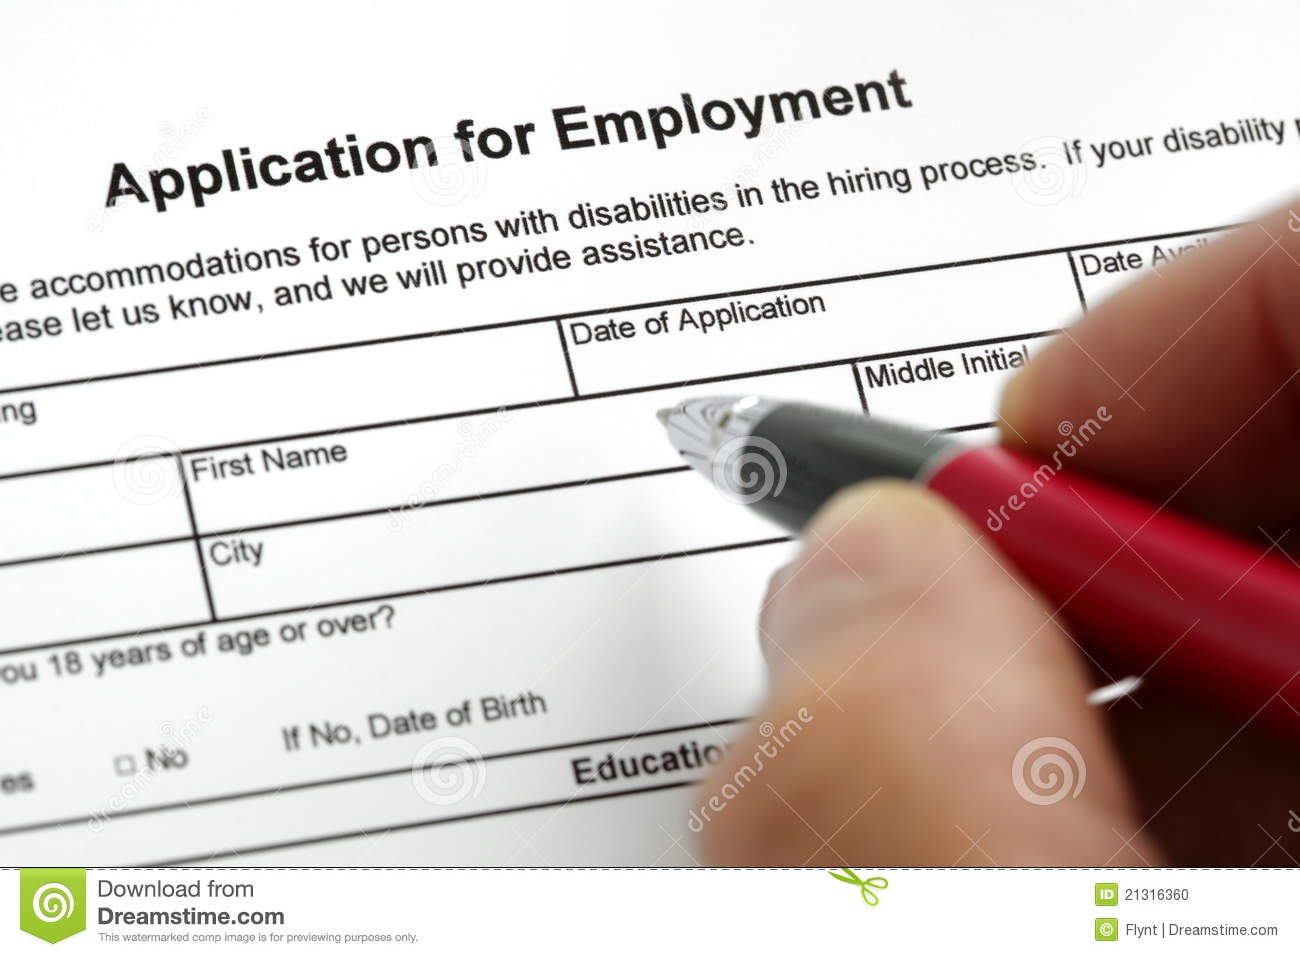 Application for employment stock photo. Image of unemployment - 21316360